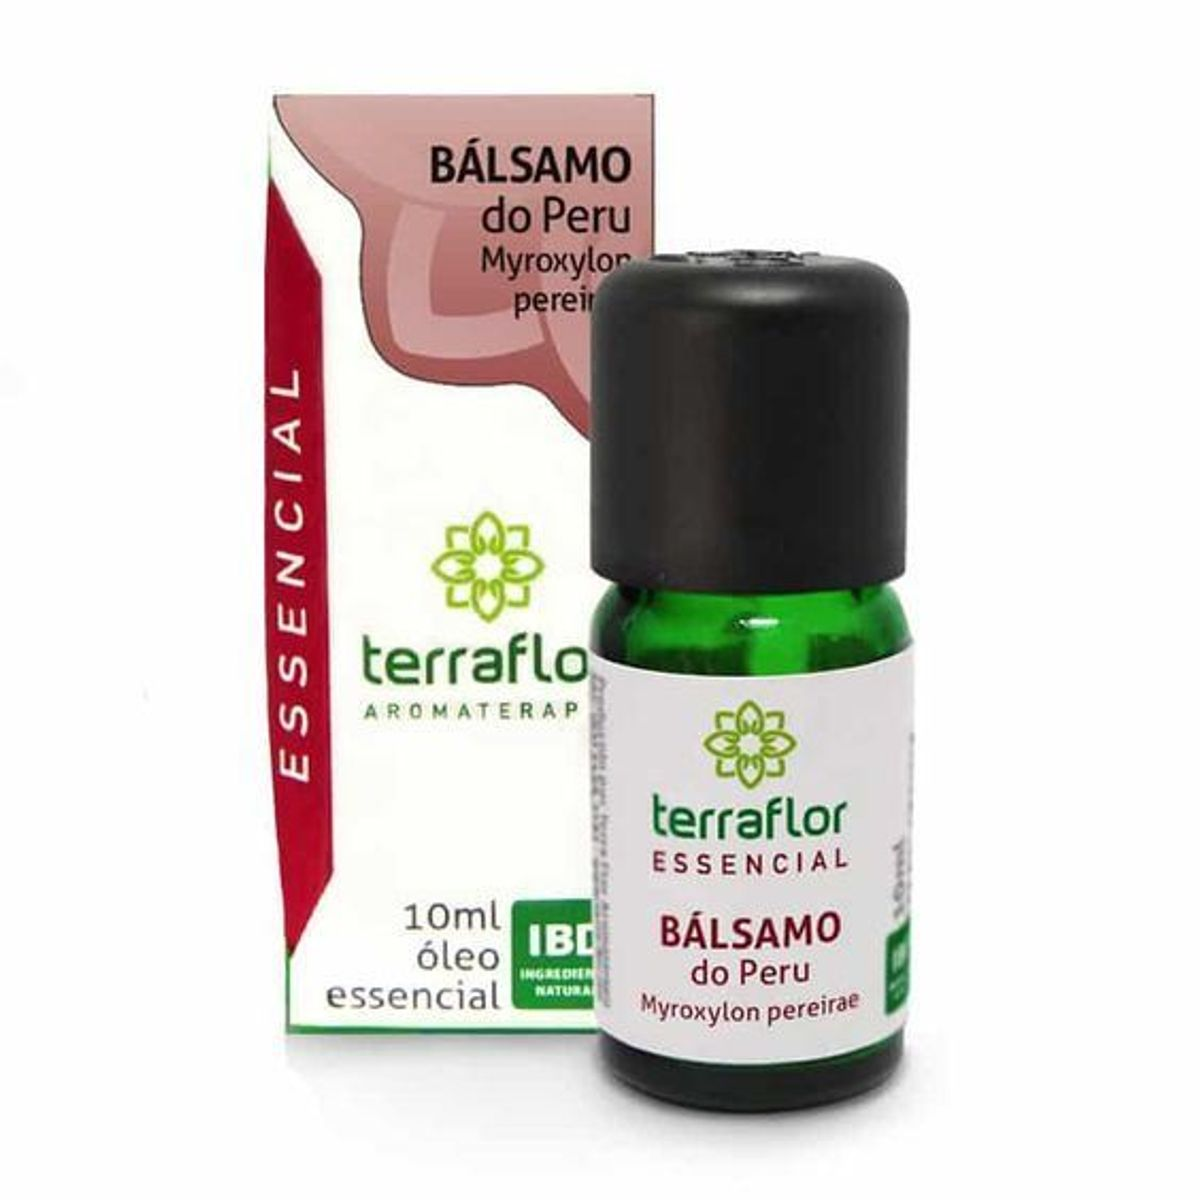 ÓLEO ESSENCIAL TERRA FLOR BÁLSAMO DO PERU RESINOIDE 10ML